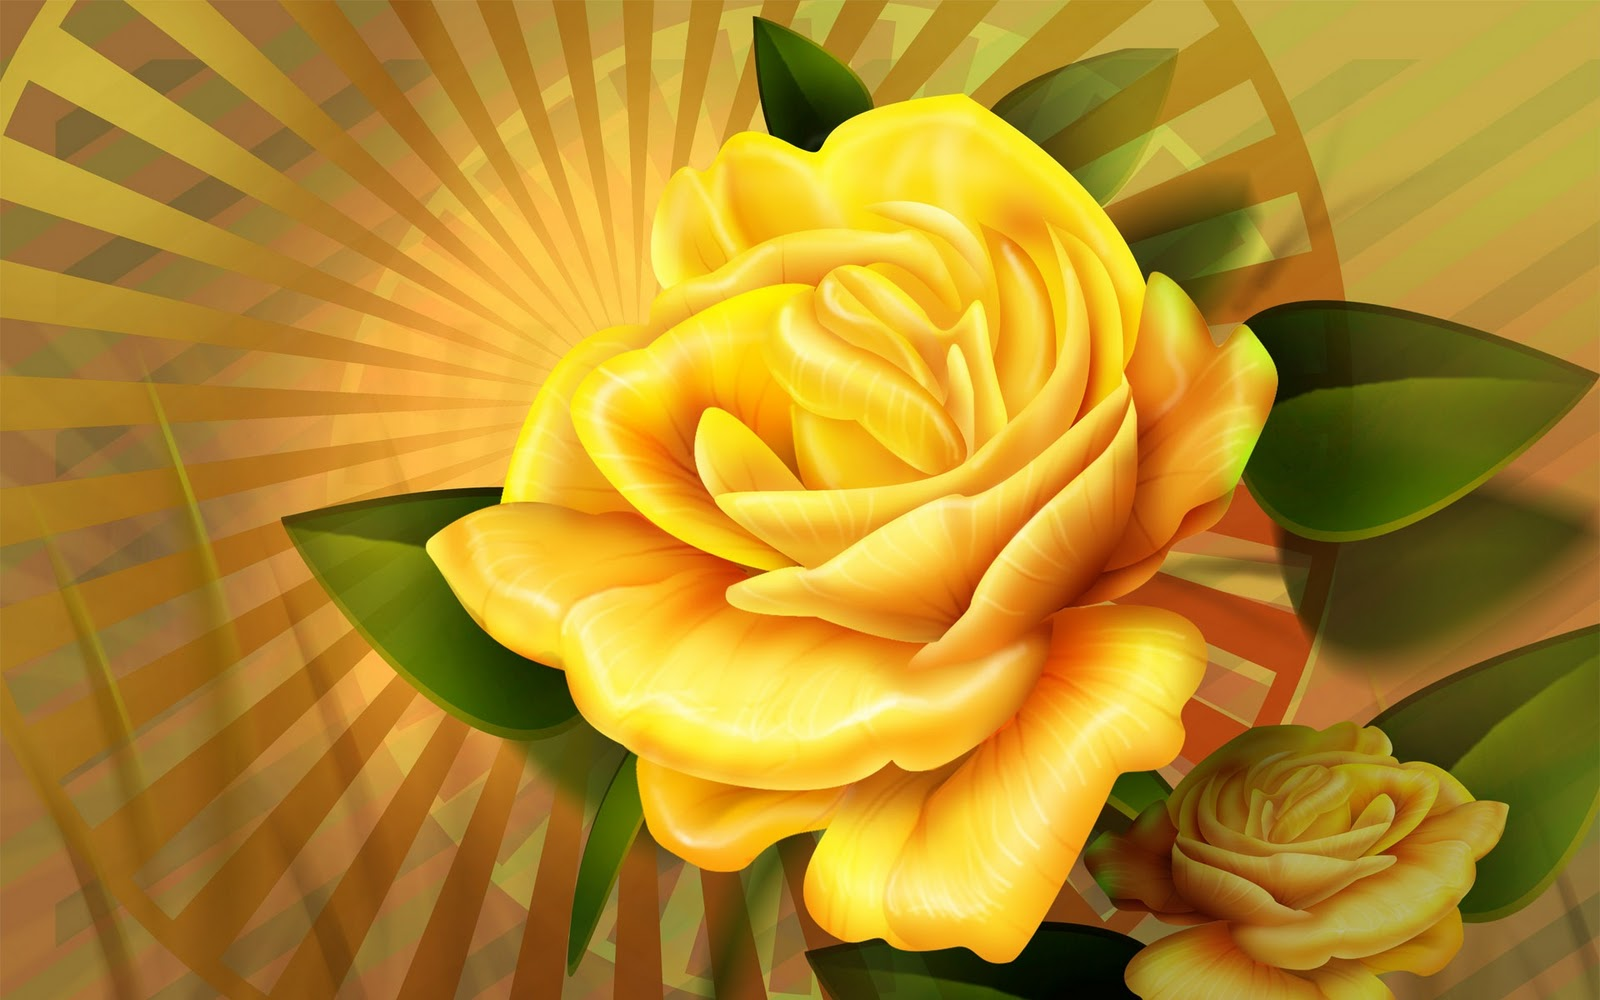 rose wallpapers best - photo #7